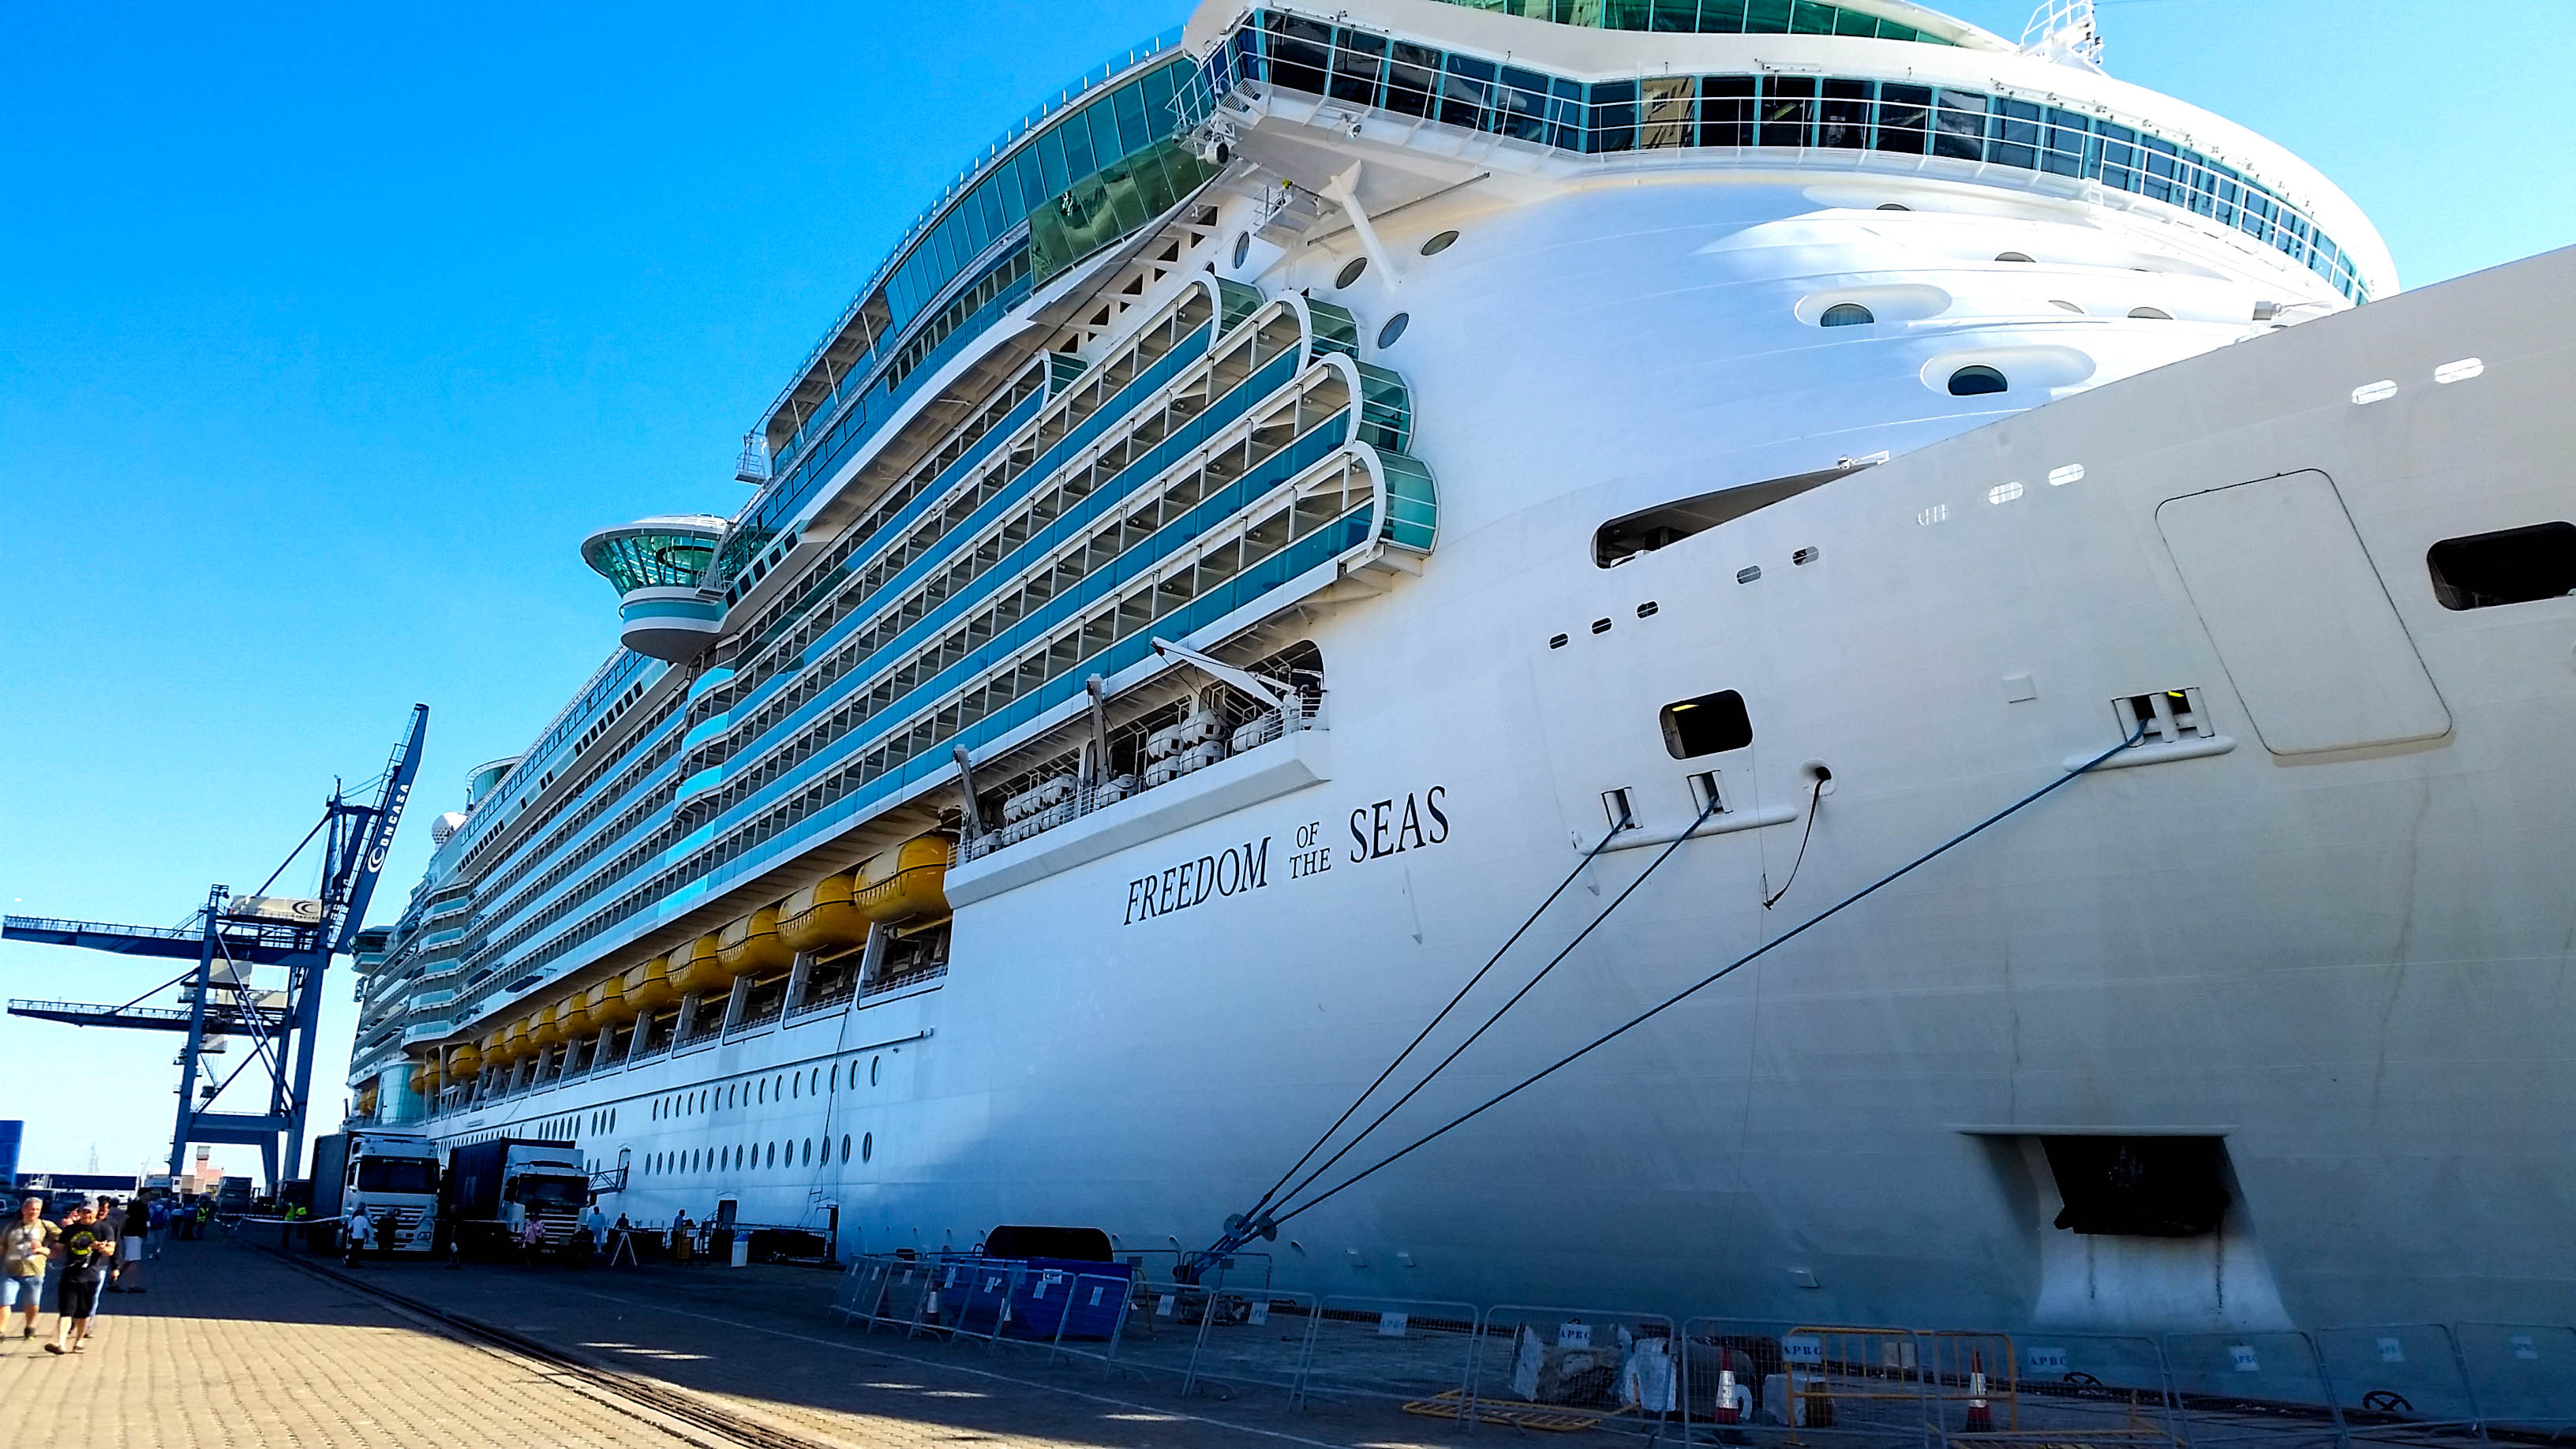 Cruising Aboard the Royal Caribbean Freedom of the Seas